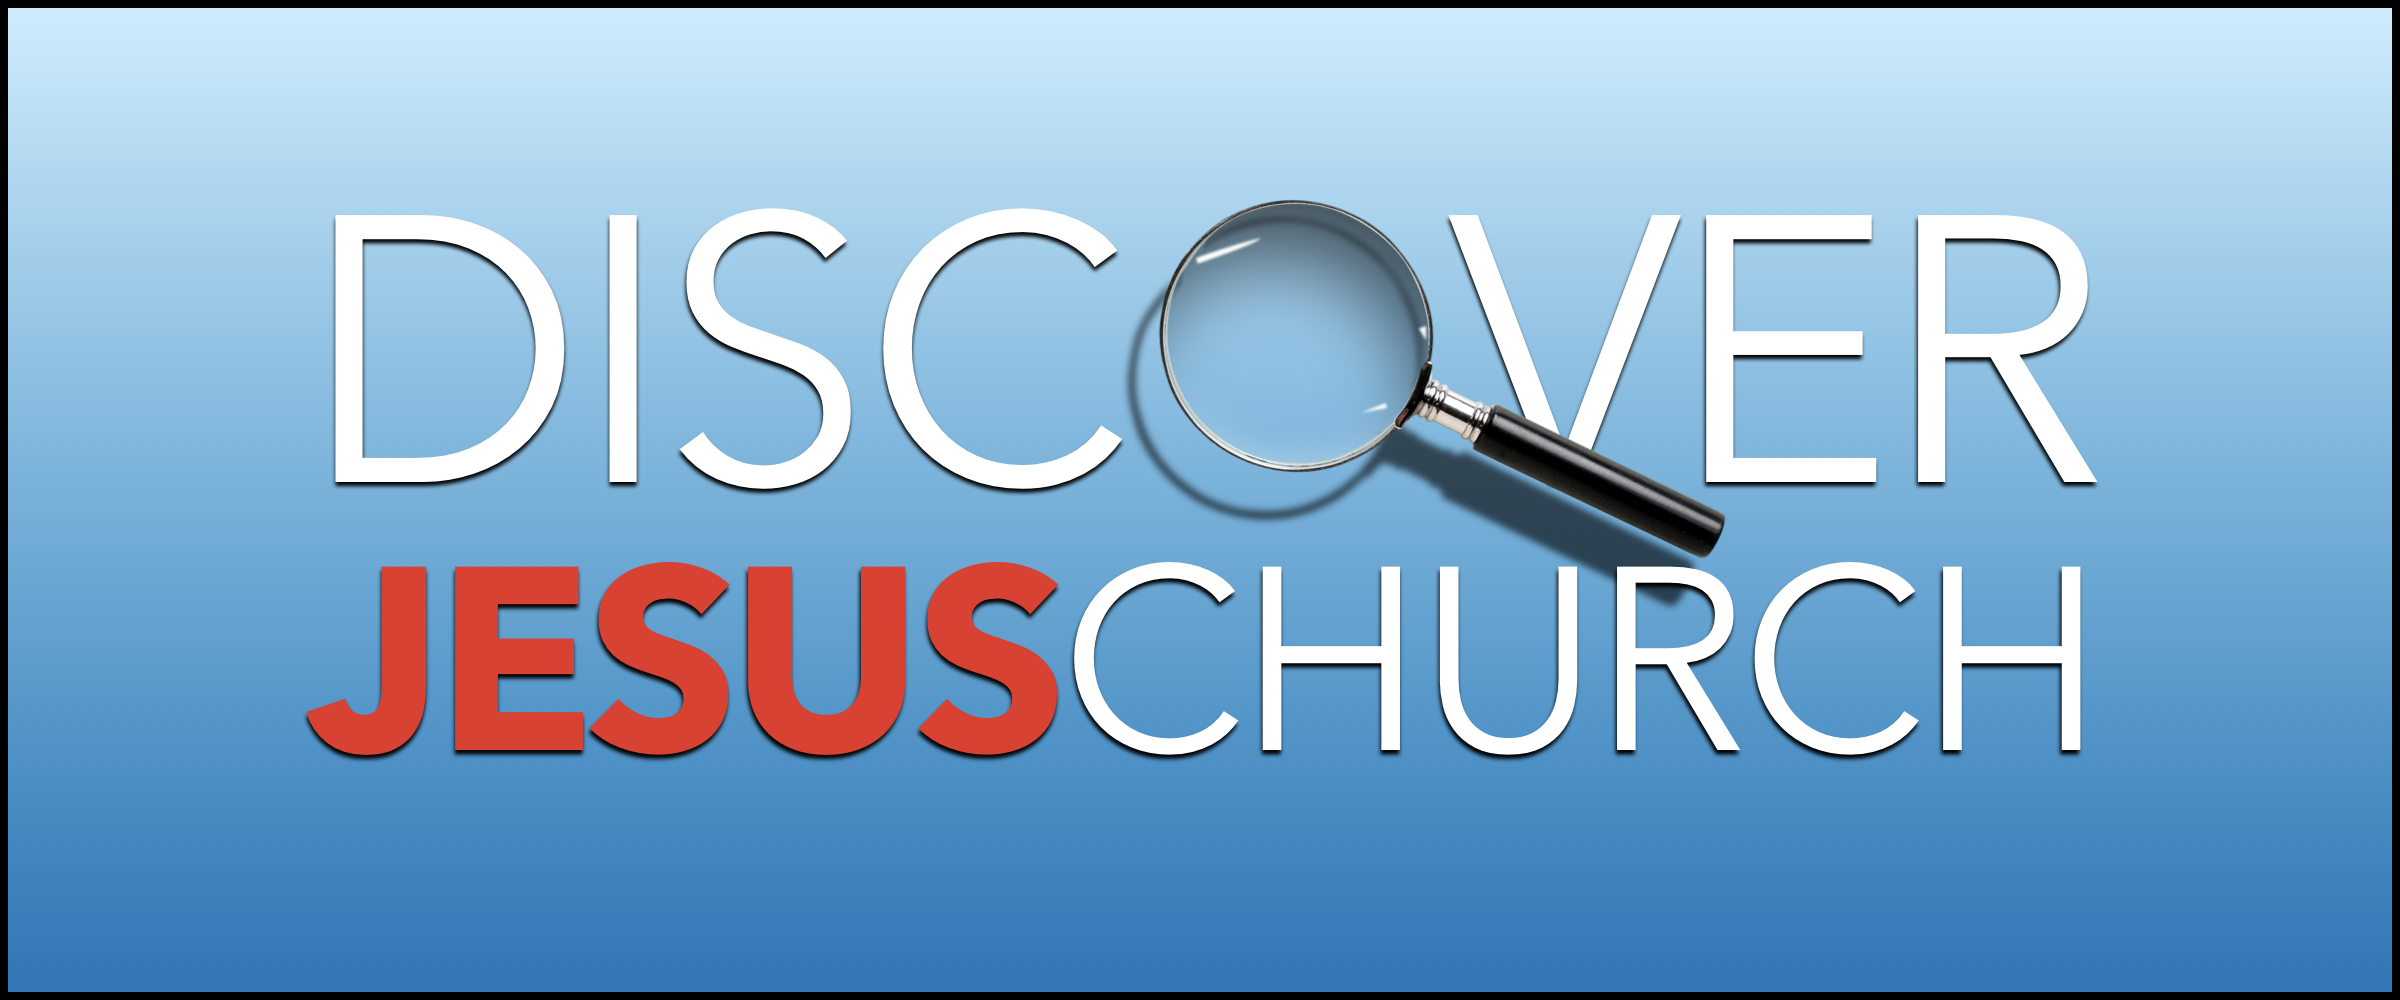 DISCOVER JESUSCHURCH - (Thumbnails).001.png